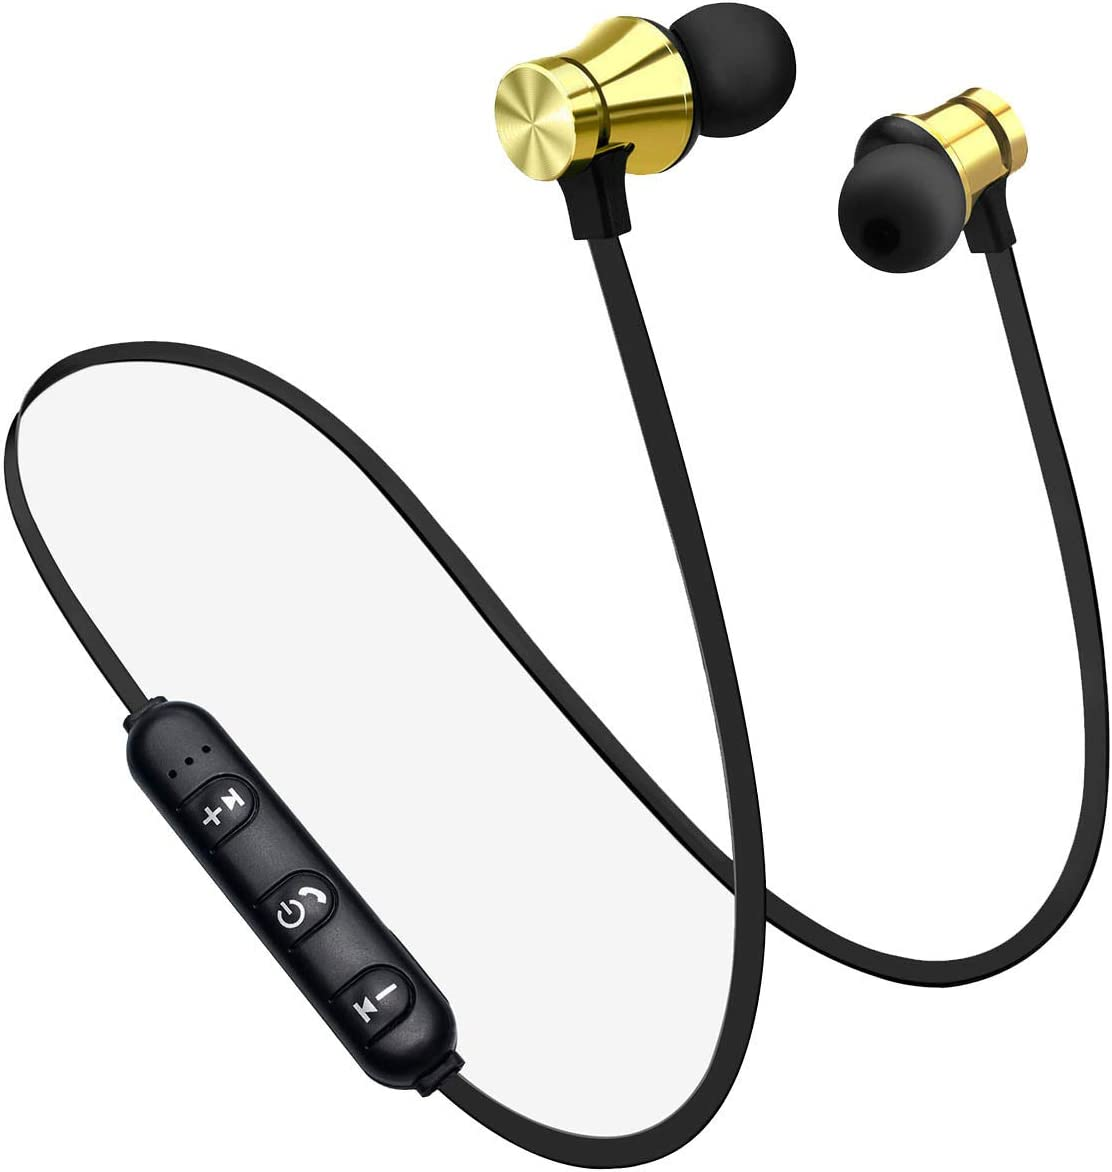 Earbuds Headphones with Microphone,Earbuds Wired Stereo Earphones in-Ear Bass Earbuds, Compatible with iPhone and Android Smartphones,iPod,iPad, MP3 Players,Fits All 3.5mm Interface (Gold)